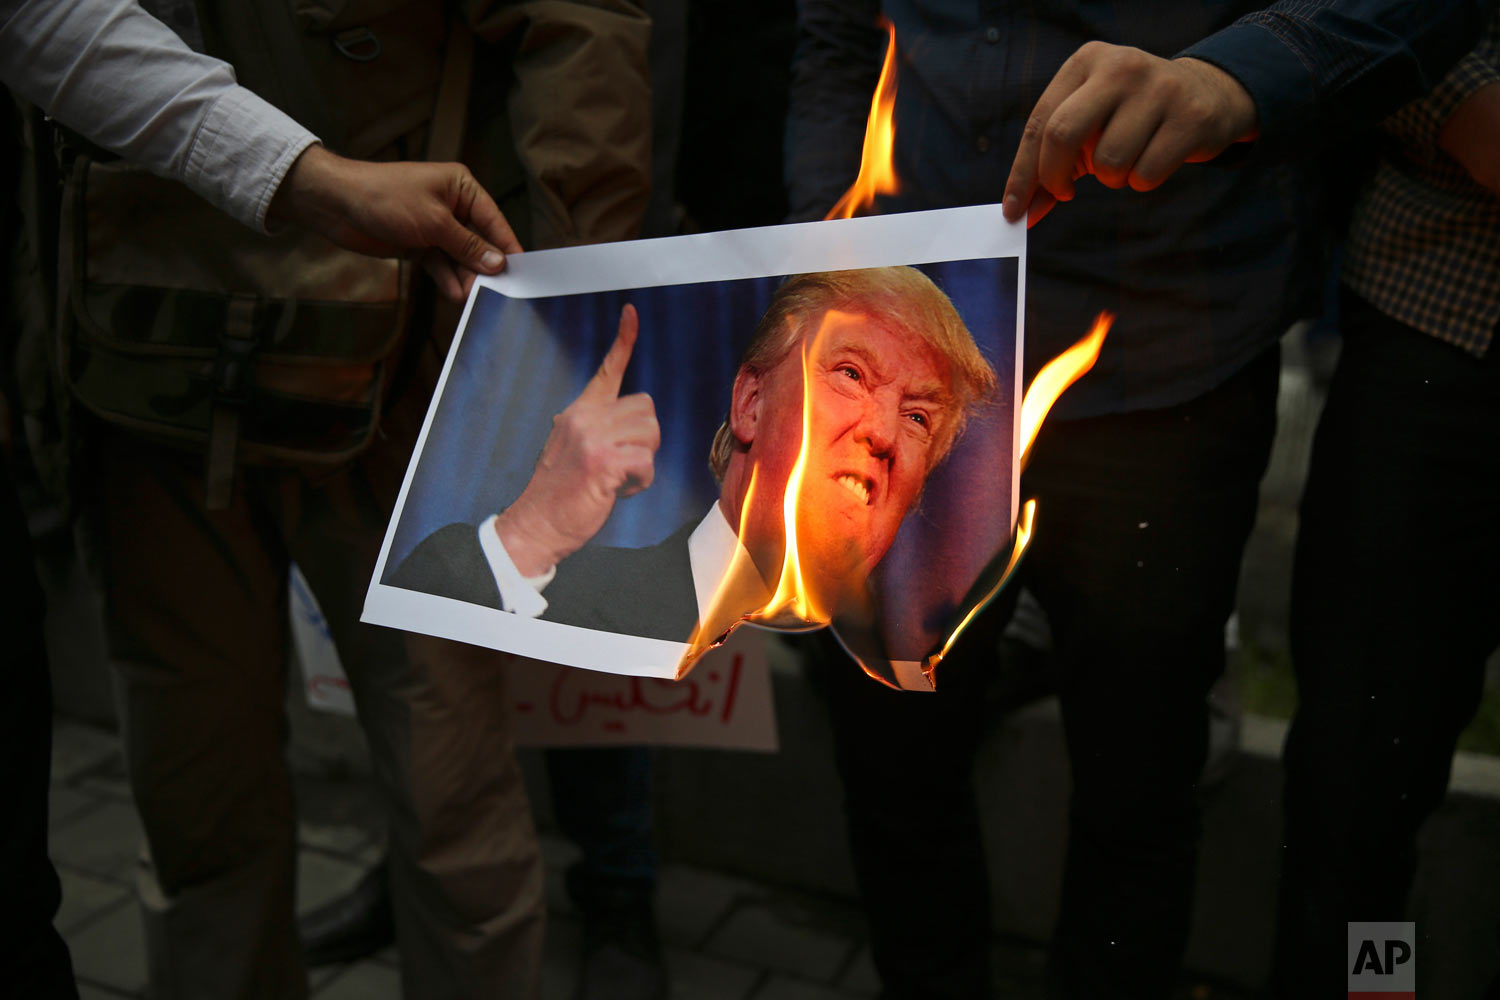 Demonstrators burn a picture of U.S. President Donald Trump during during a protest in front of the former U.S. embassy in Tehran, Iran, on Wednesday, May 9, 2018, in response to Trump's decision to pull out of the international nuclear deal and renew sanctions. (AP Photo/Vahid Salemi)